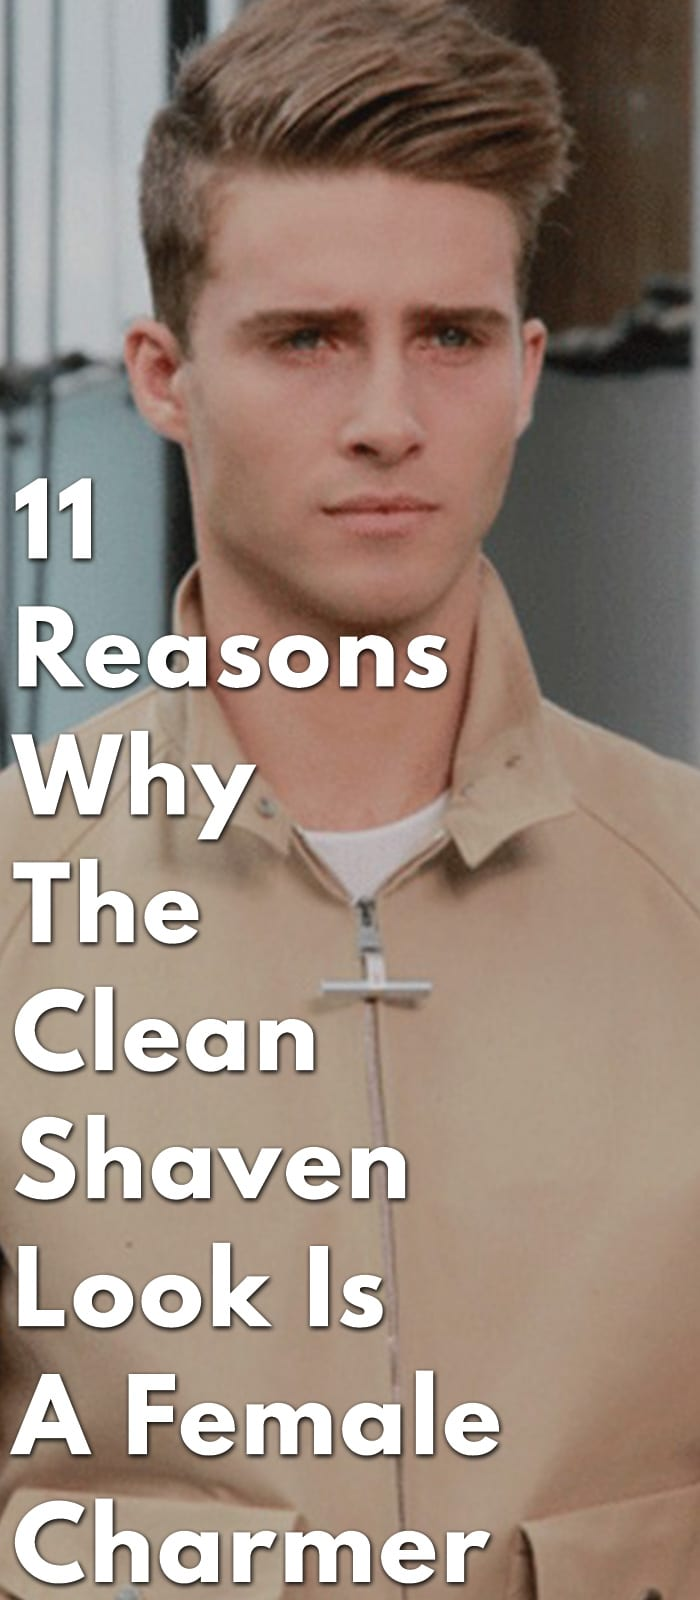 11-Reasons-Why-The-Clean-Shaven-Look-Is-A-Female-Charmer.